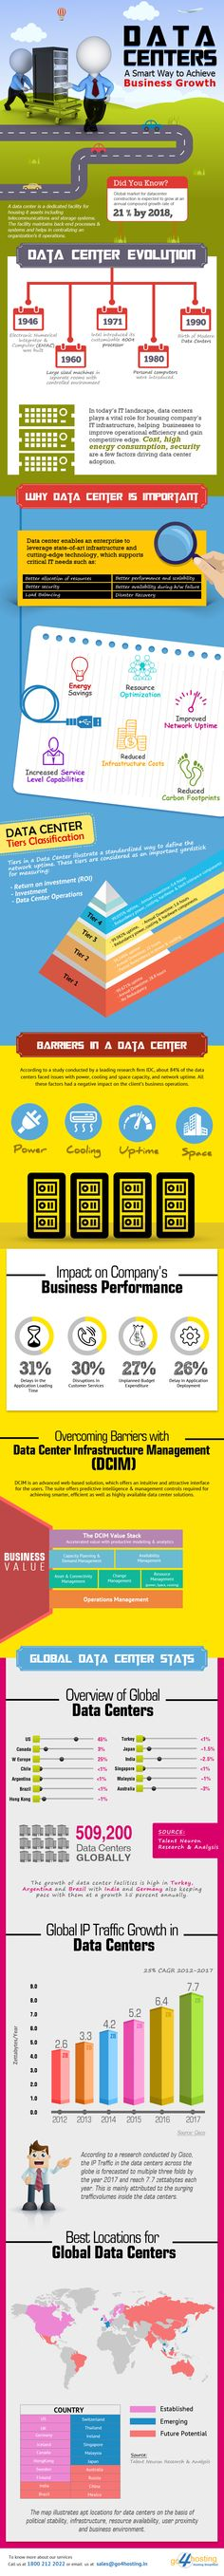 In this competitive business landscape, enterprises are striving to streamline their operations while protecting their mission critical data and applications in a secured environment. In this light, data centers are acting as a game changer. By leveraging the IT infrastructure of a robust data center, companies can enjoy greater efficiency, flexibility, and allocate their resources optimally across entire organizational structure. This Infographic by Go4Hosting throws siome light on the…